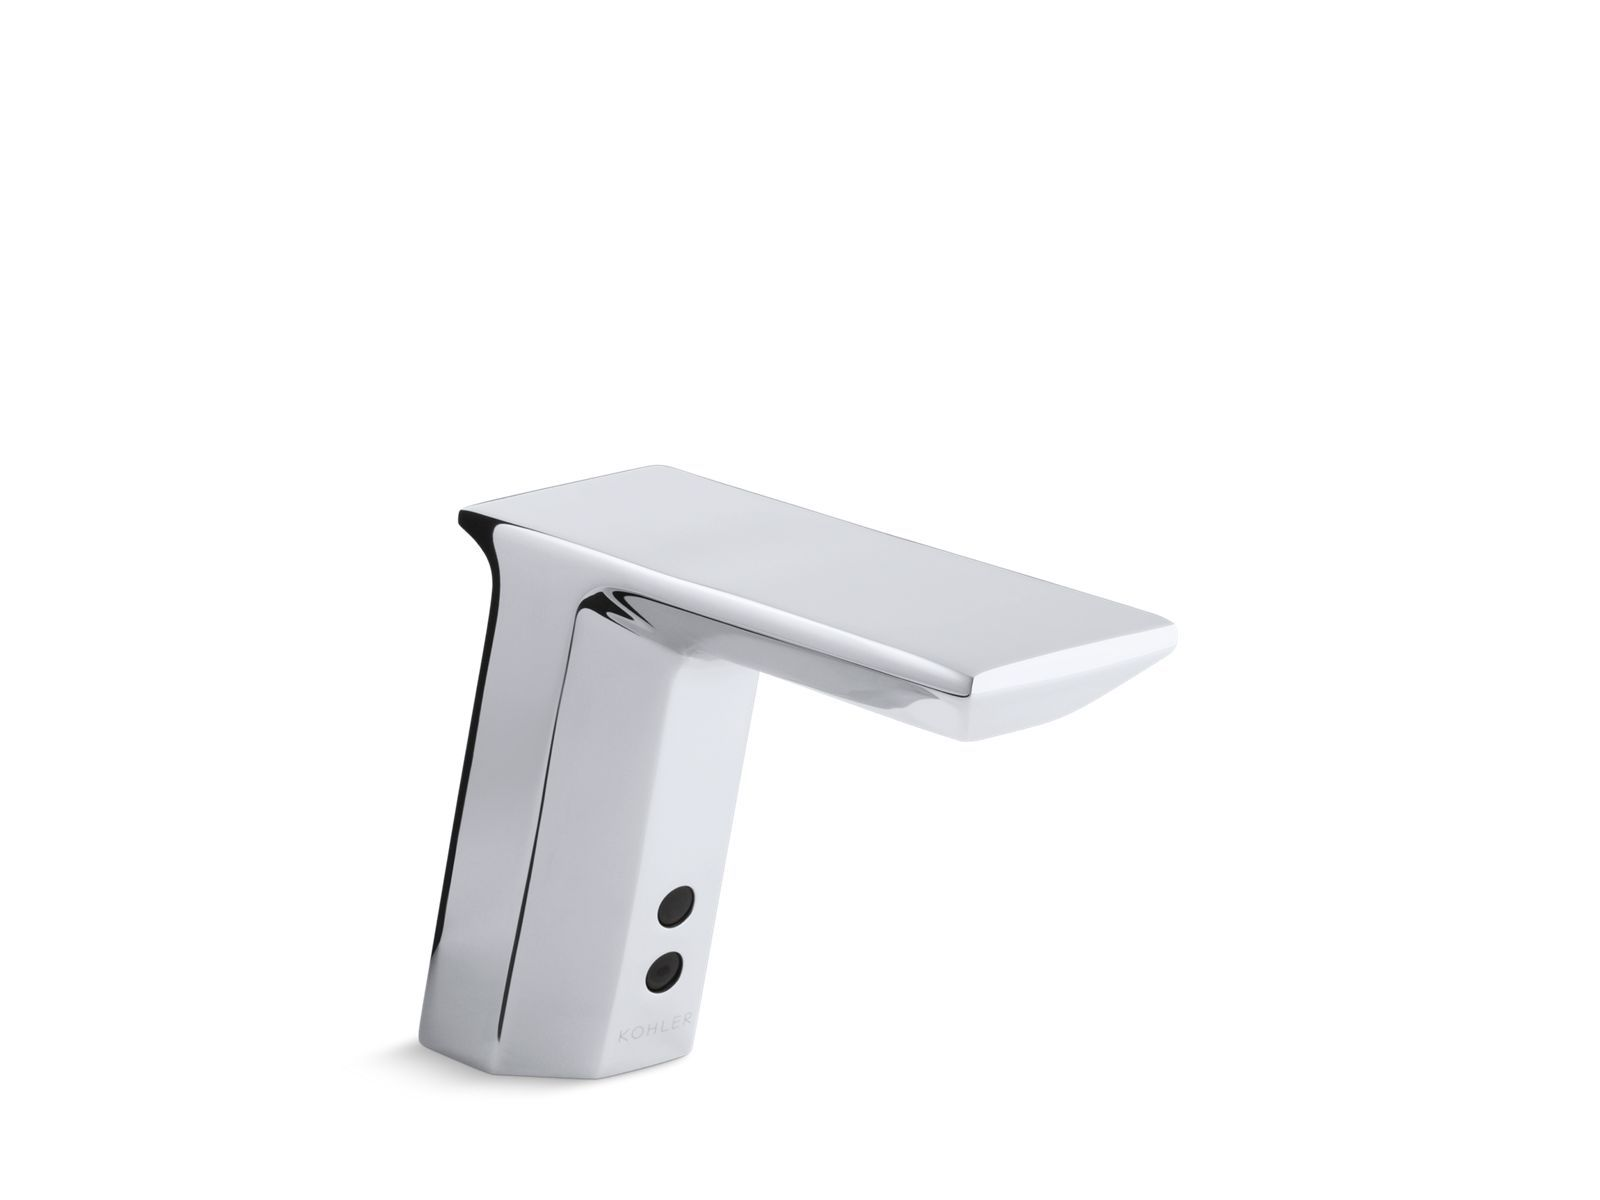 Geometric Single-Hole Touchless AC-Powered Commercial Bathroom Sink Faucet with Insight Technology